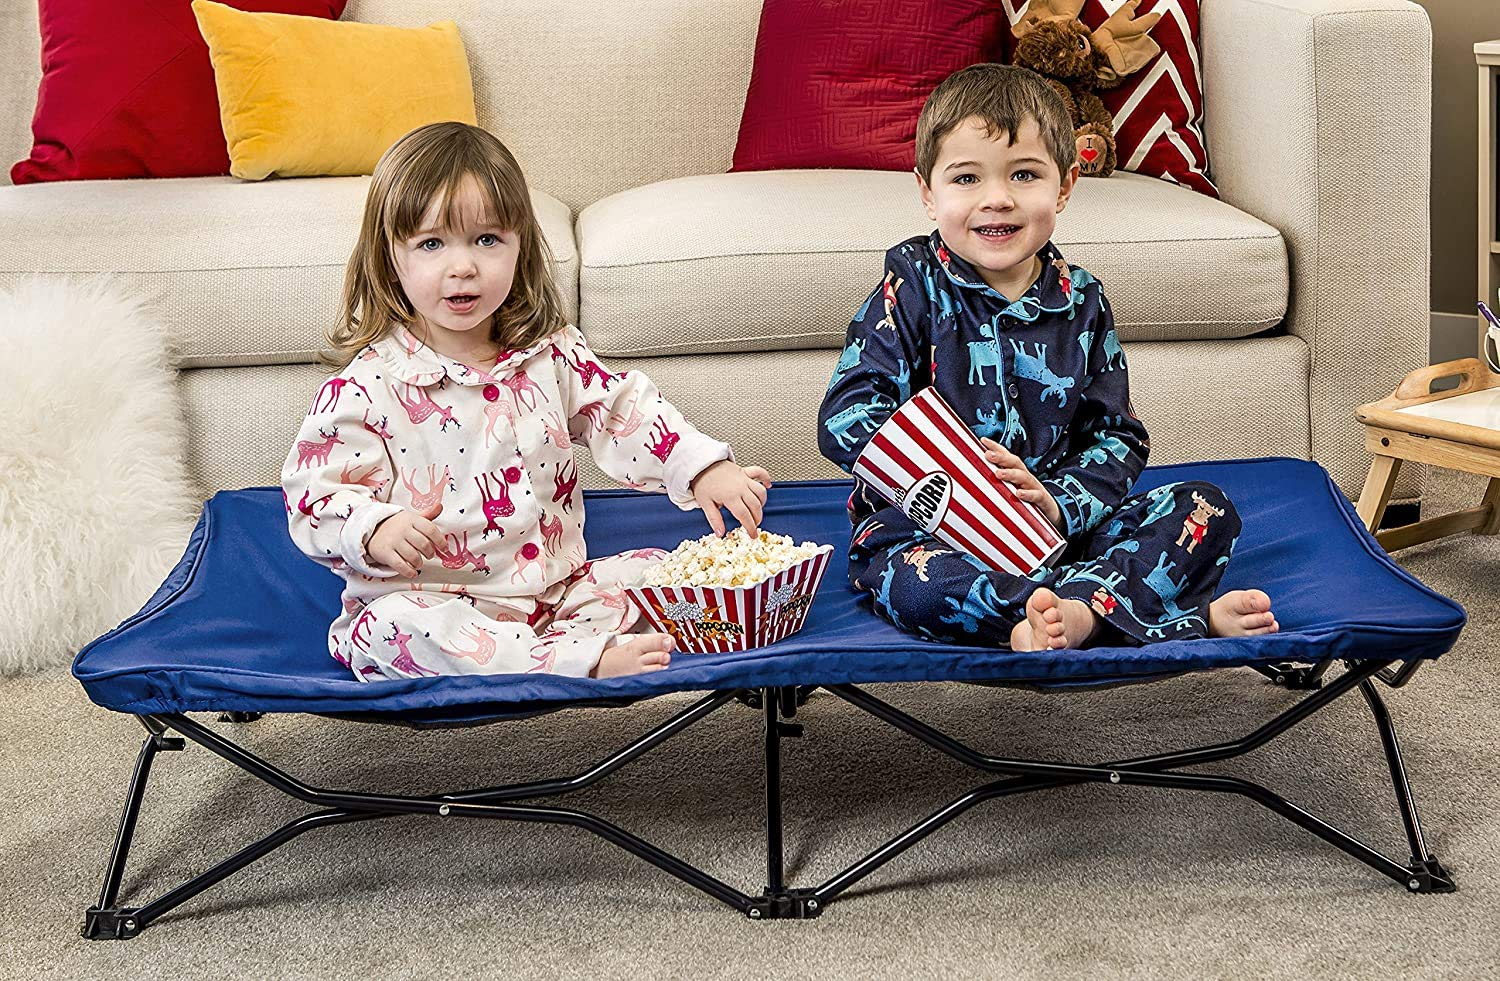 Top 10 Best Toddler Beds (2020 Reviews & Buying Guide) 4